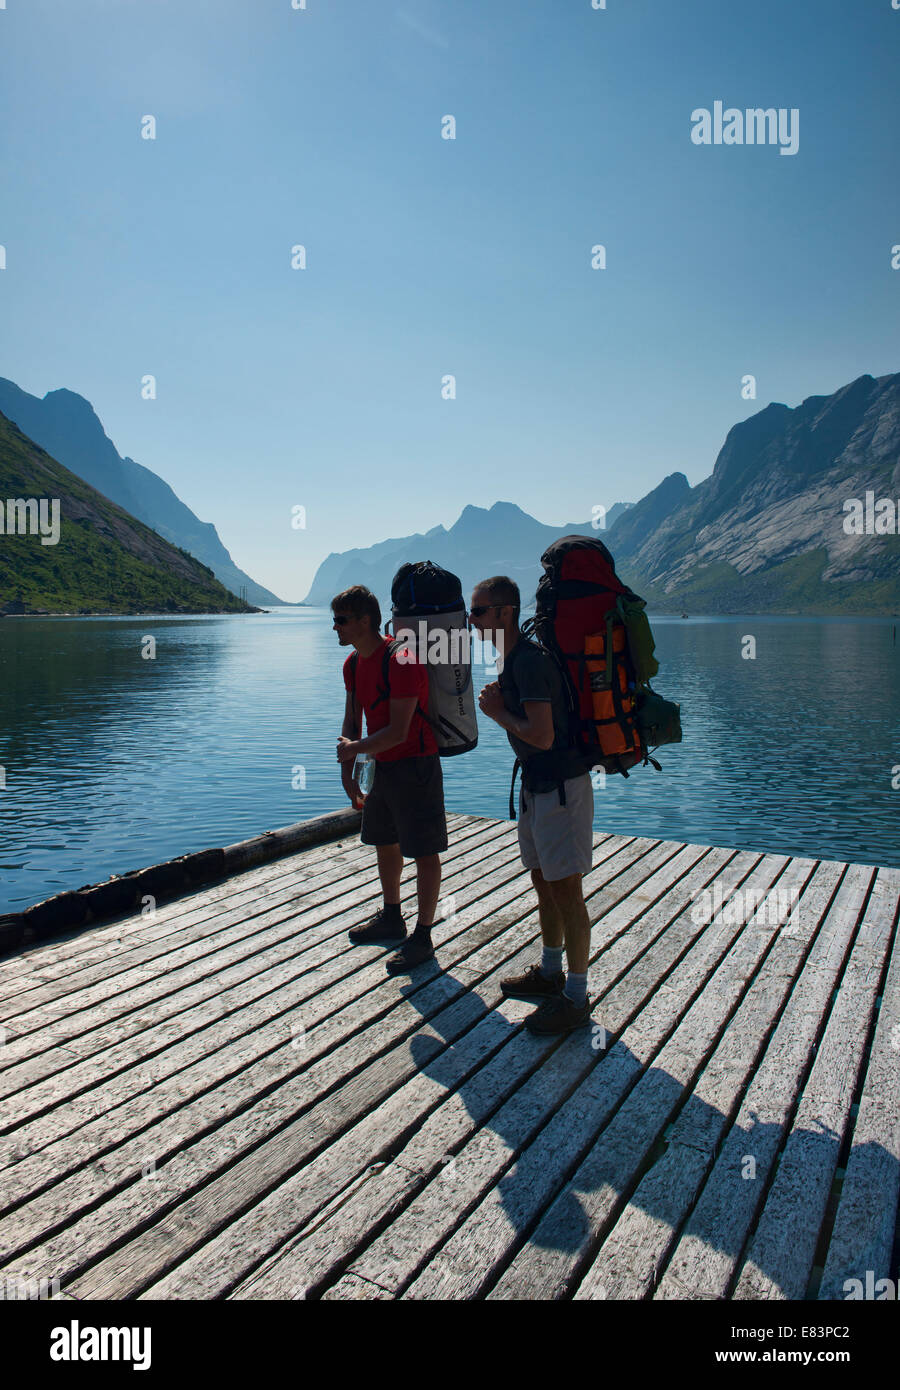 backpackers waiting for the ferry in the Lofoten Islands, Norway - Stock Image